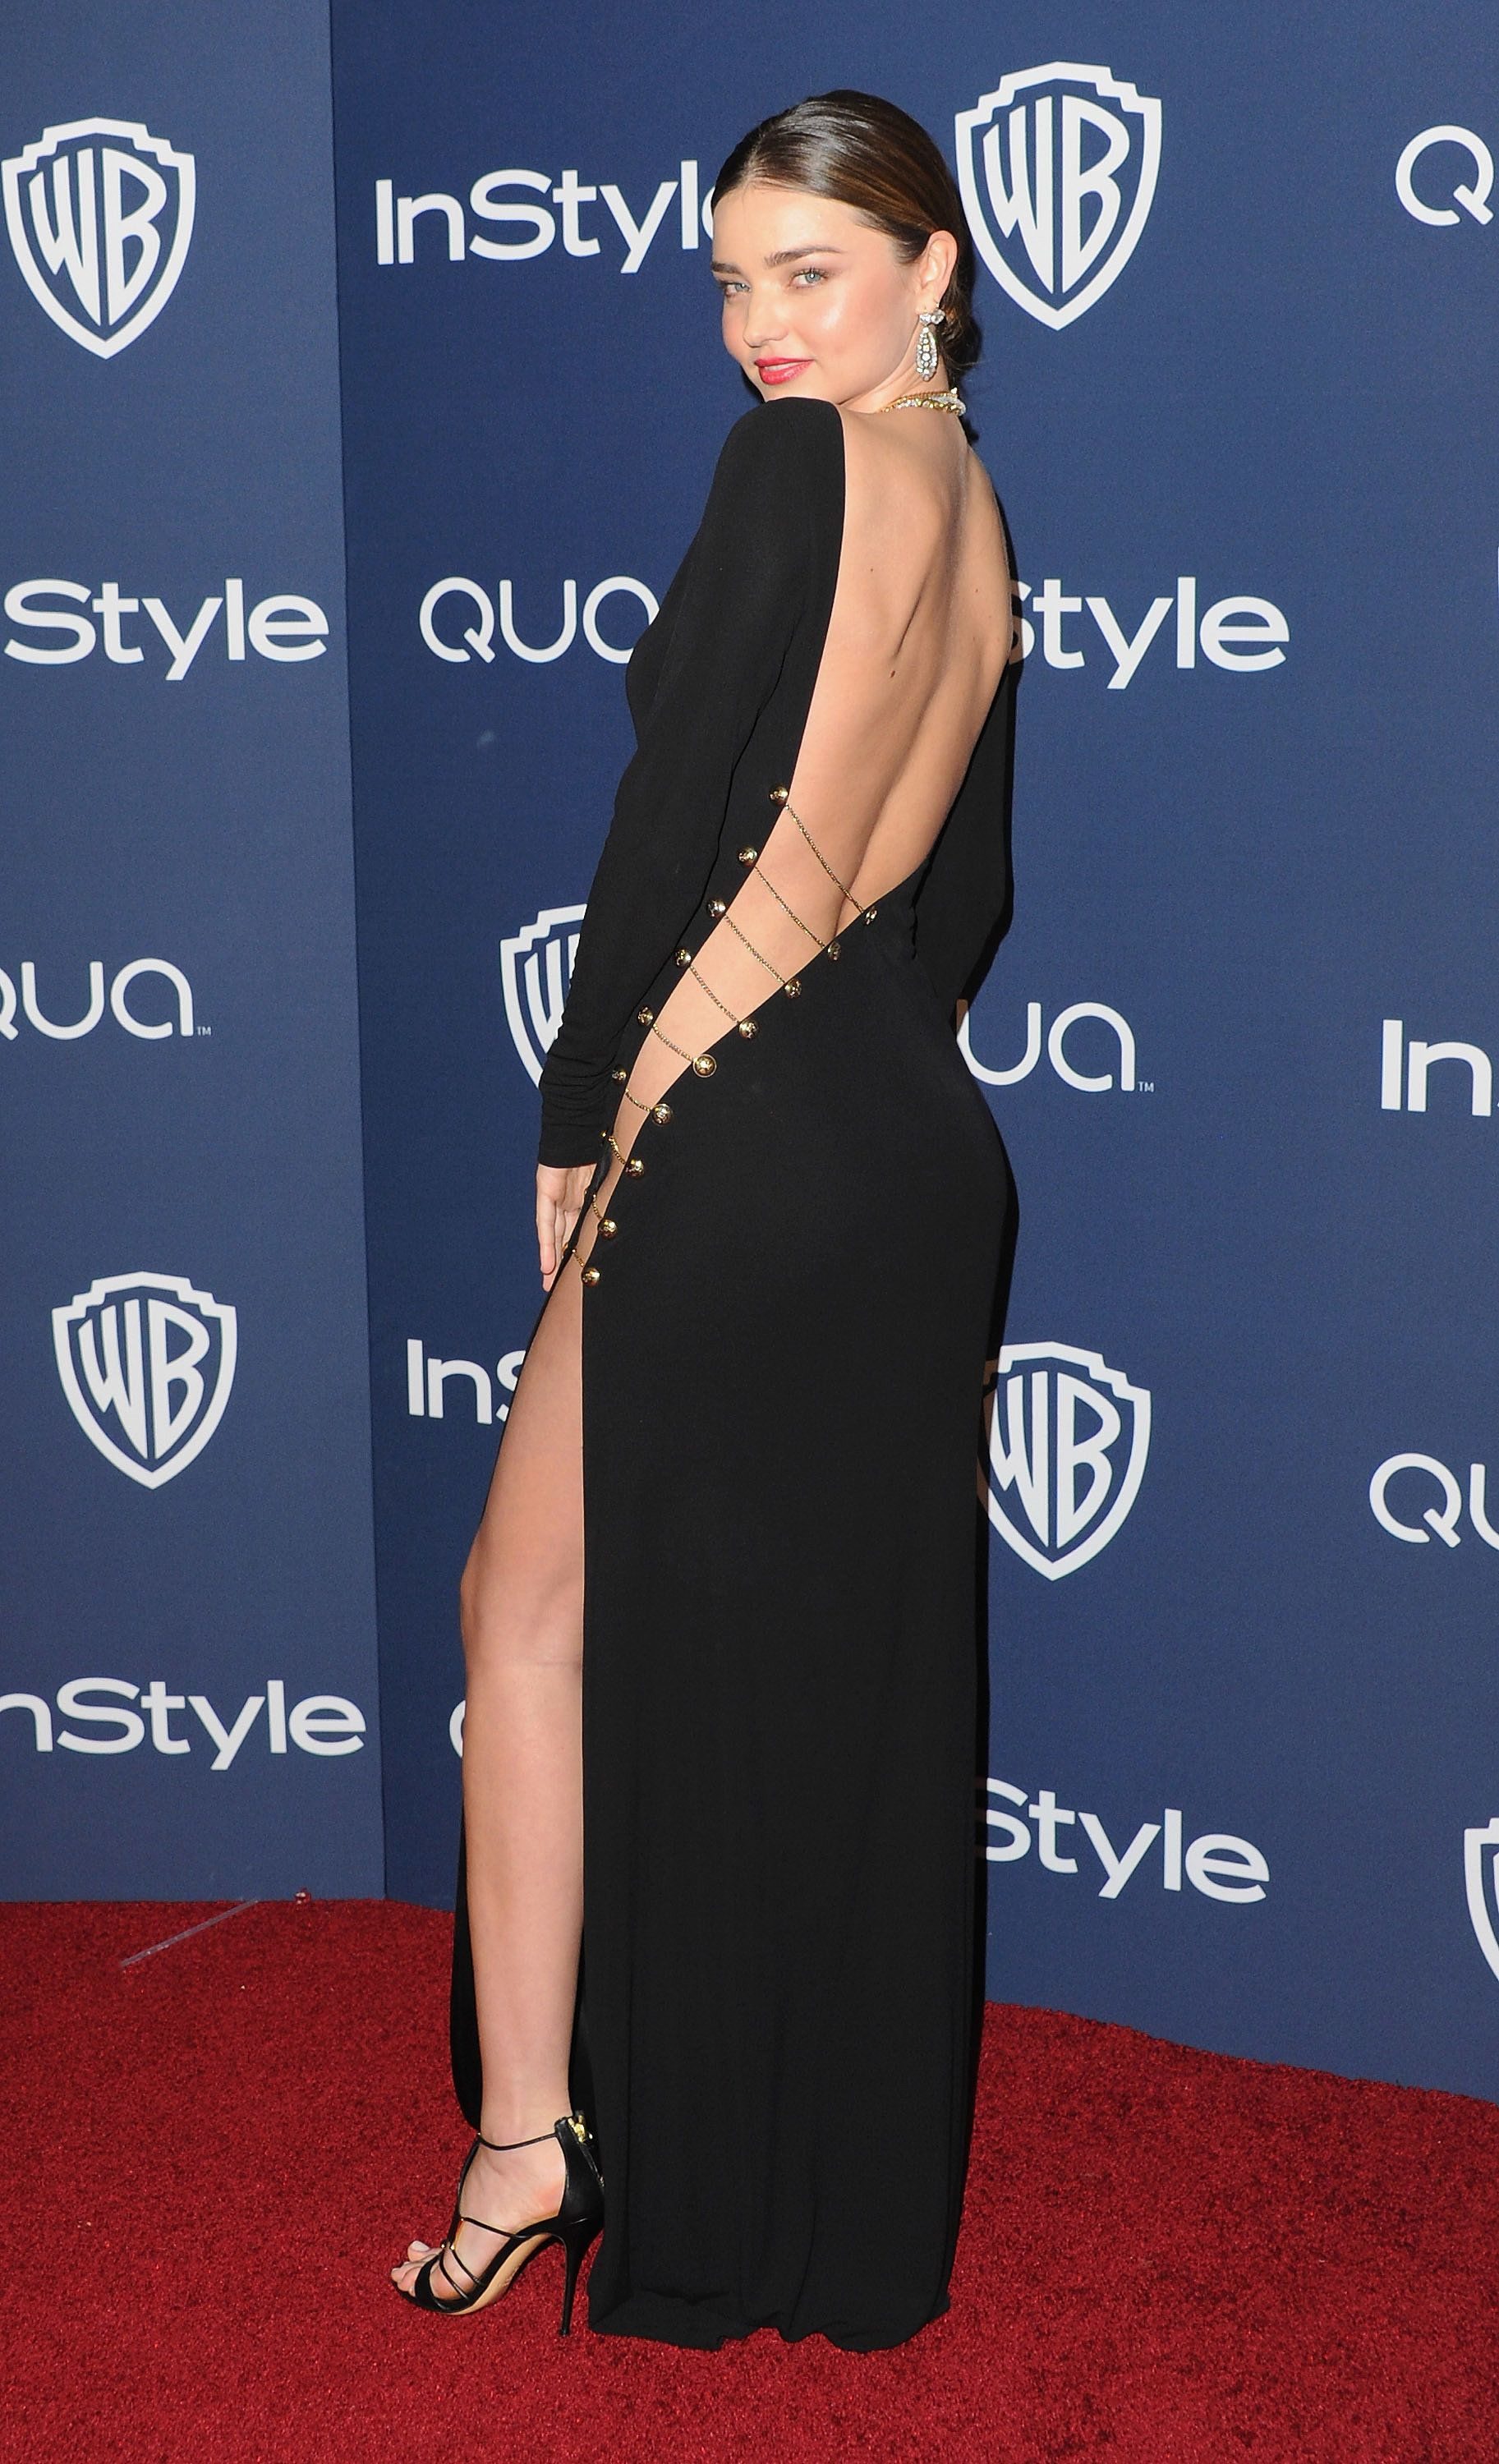 d8a3b3cd6ba8c Miranda Kerr Might Just Need a Few More Safety Pins For That Dress ...